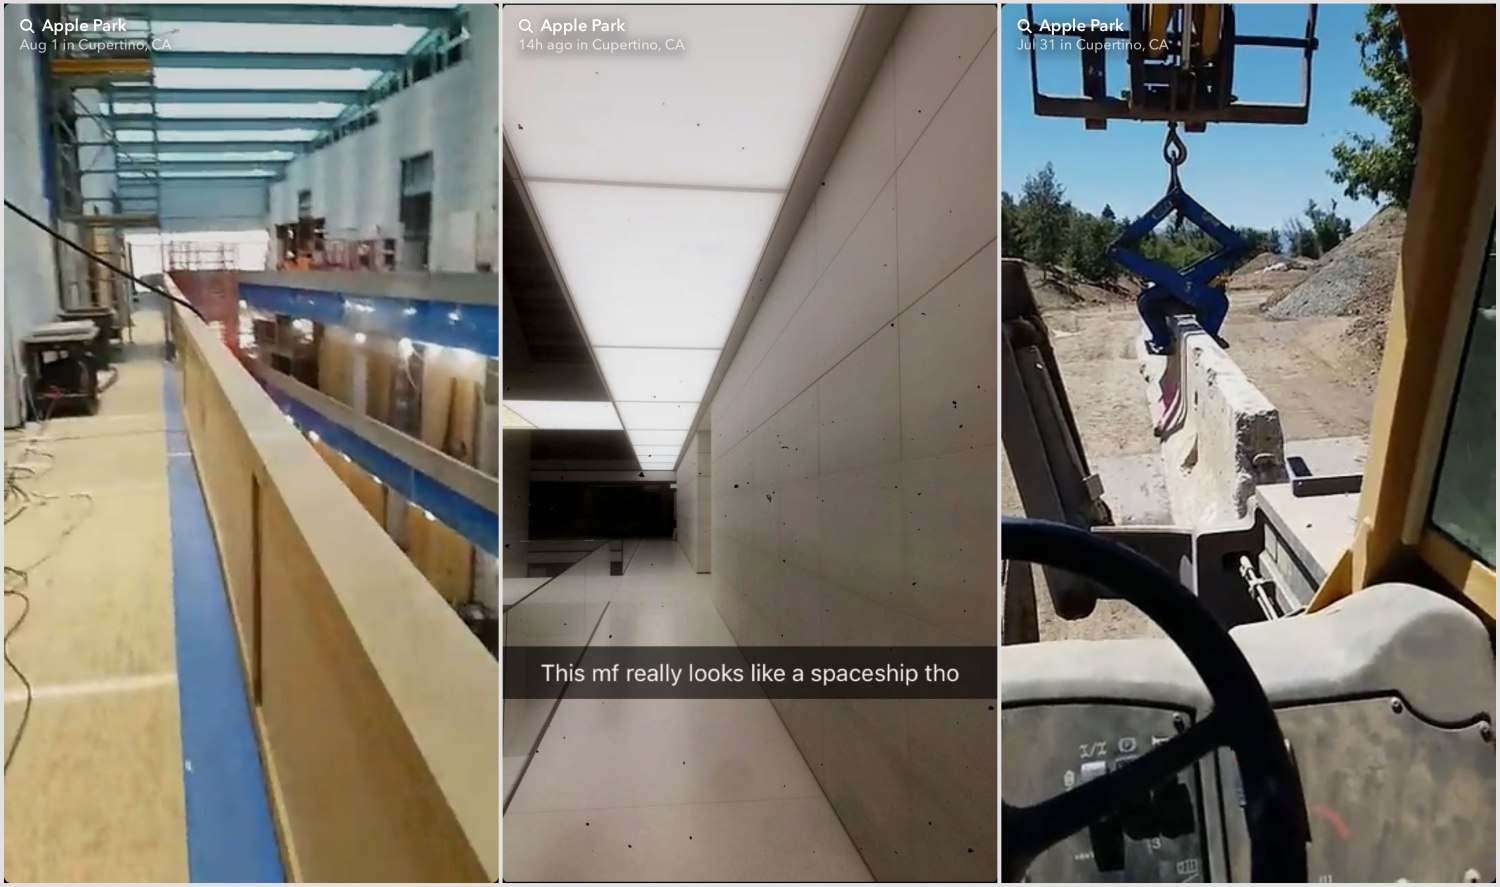 Construction workers are posting Snapchat stories from